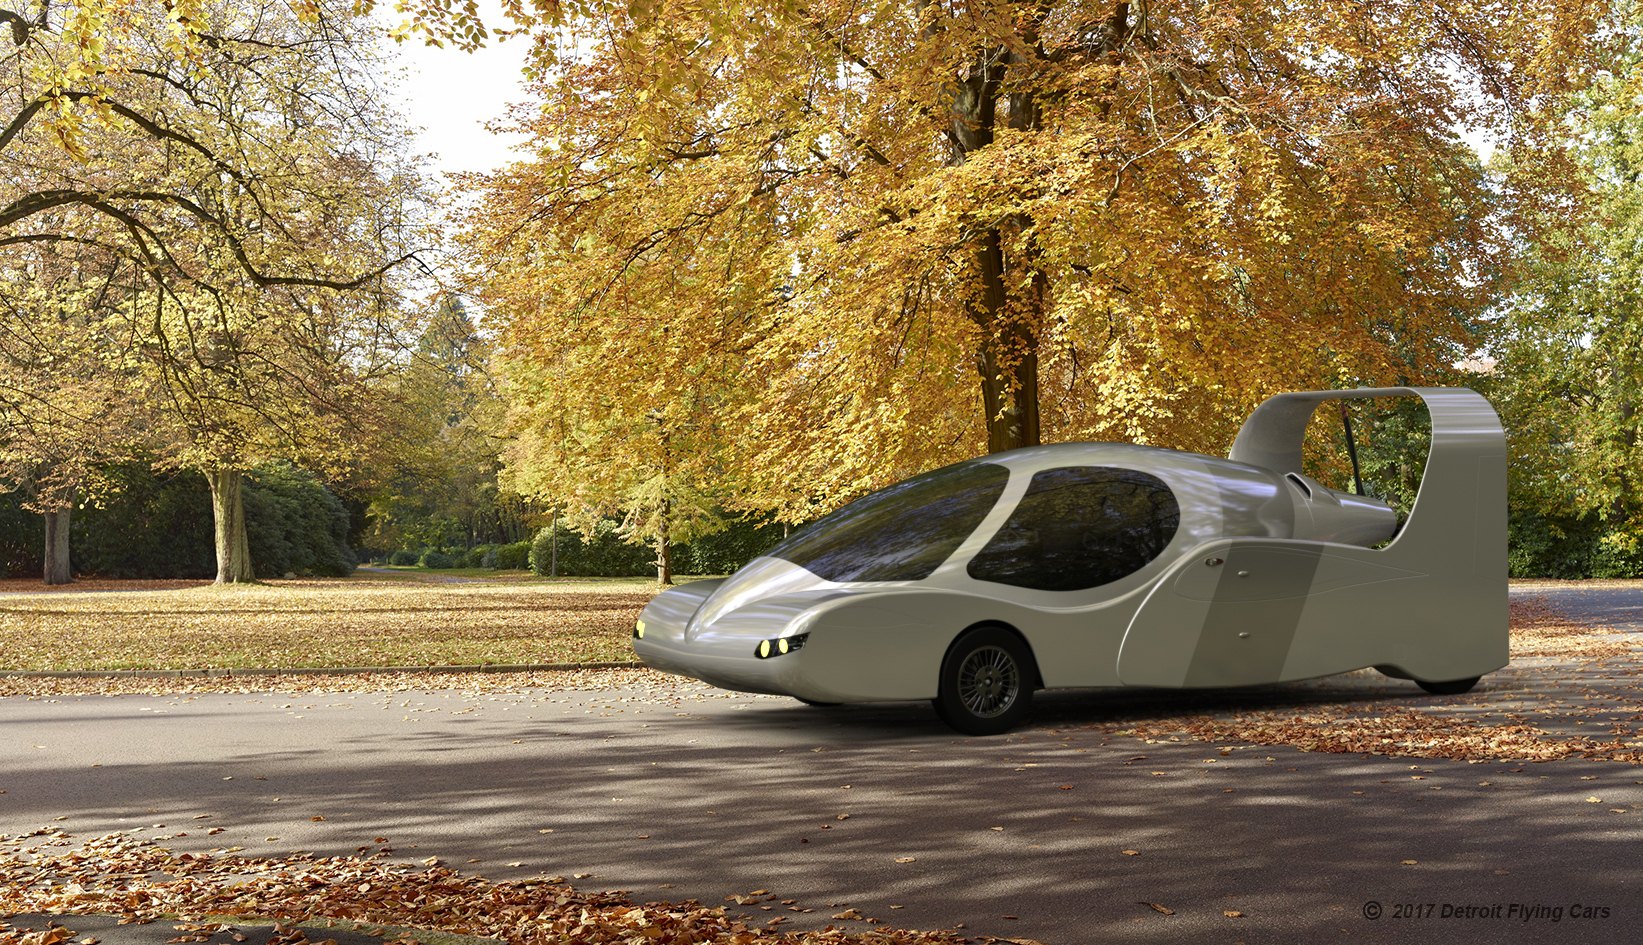 Video Images Of Flying Cars